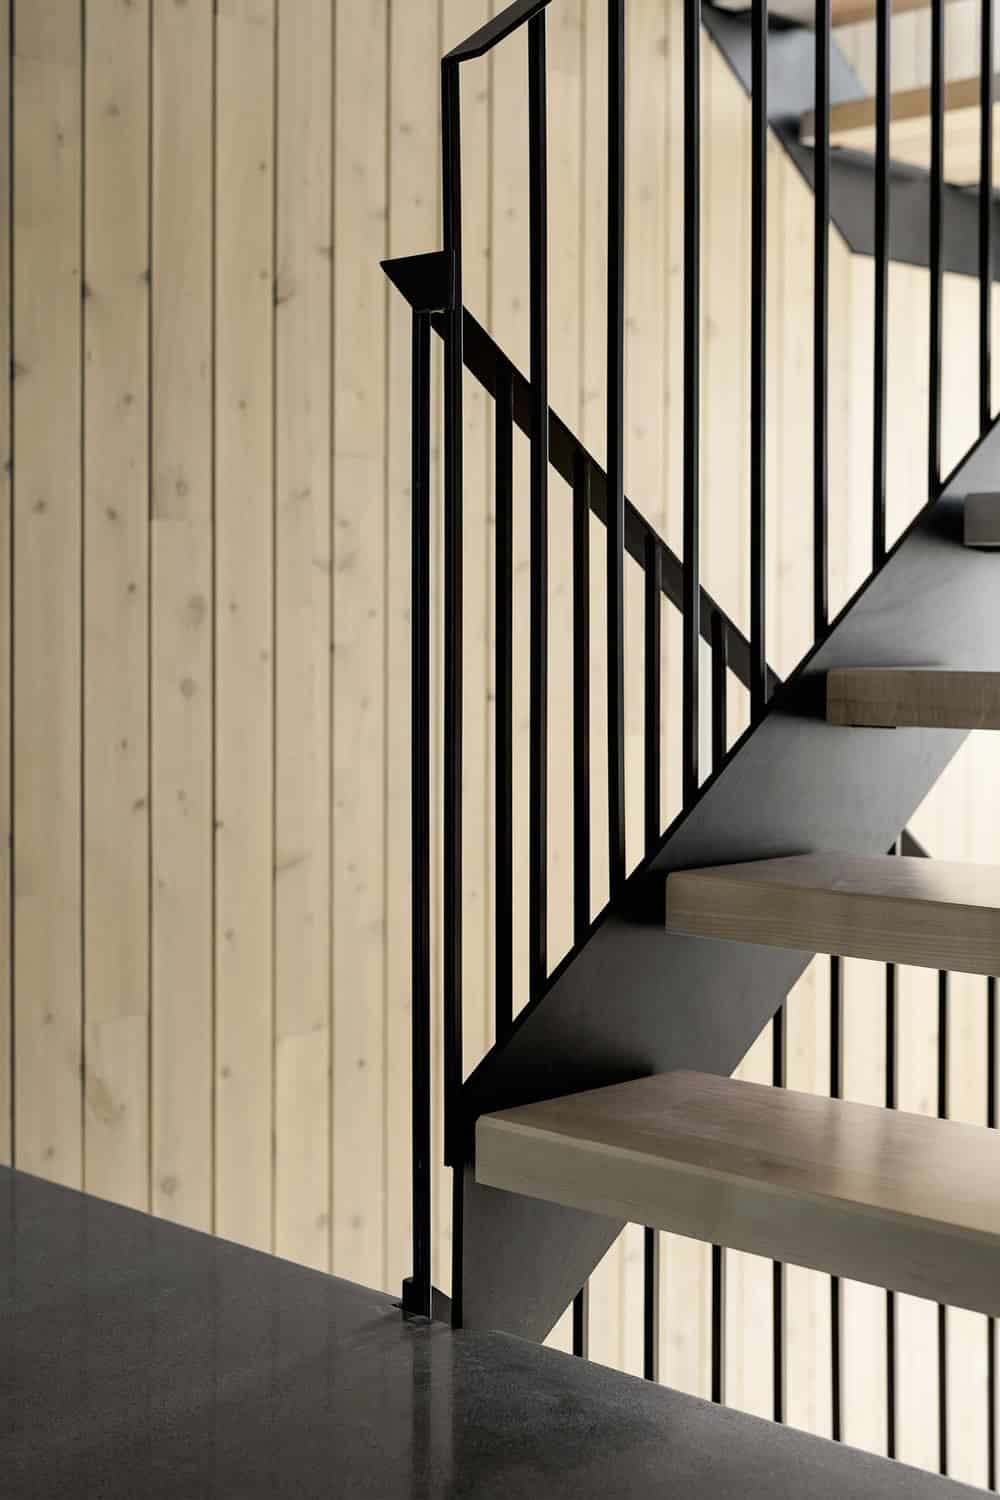 This is a close look at the staircase that has light wooden steps that contrast with the black wrough iron railings and banisters.